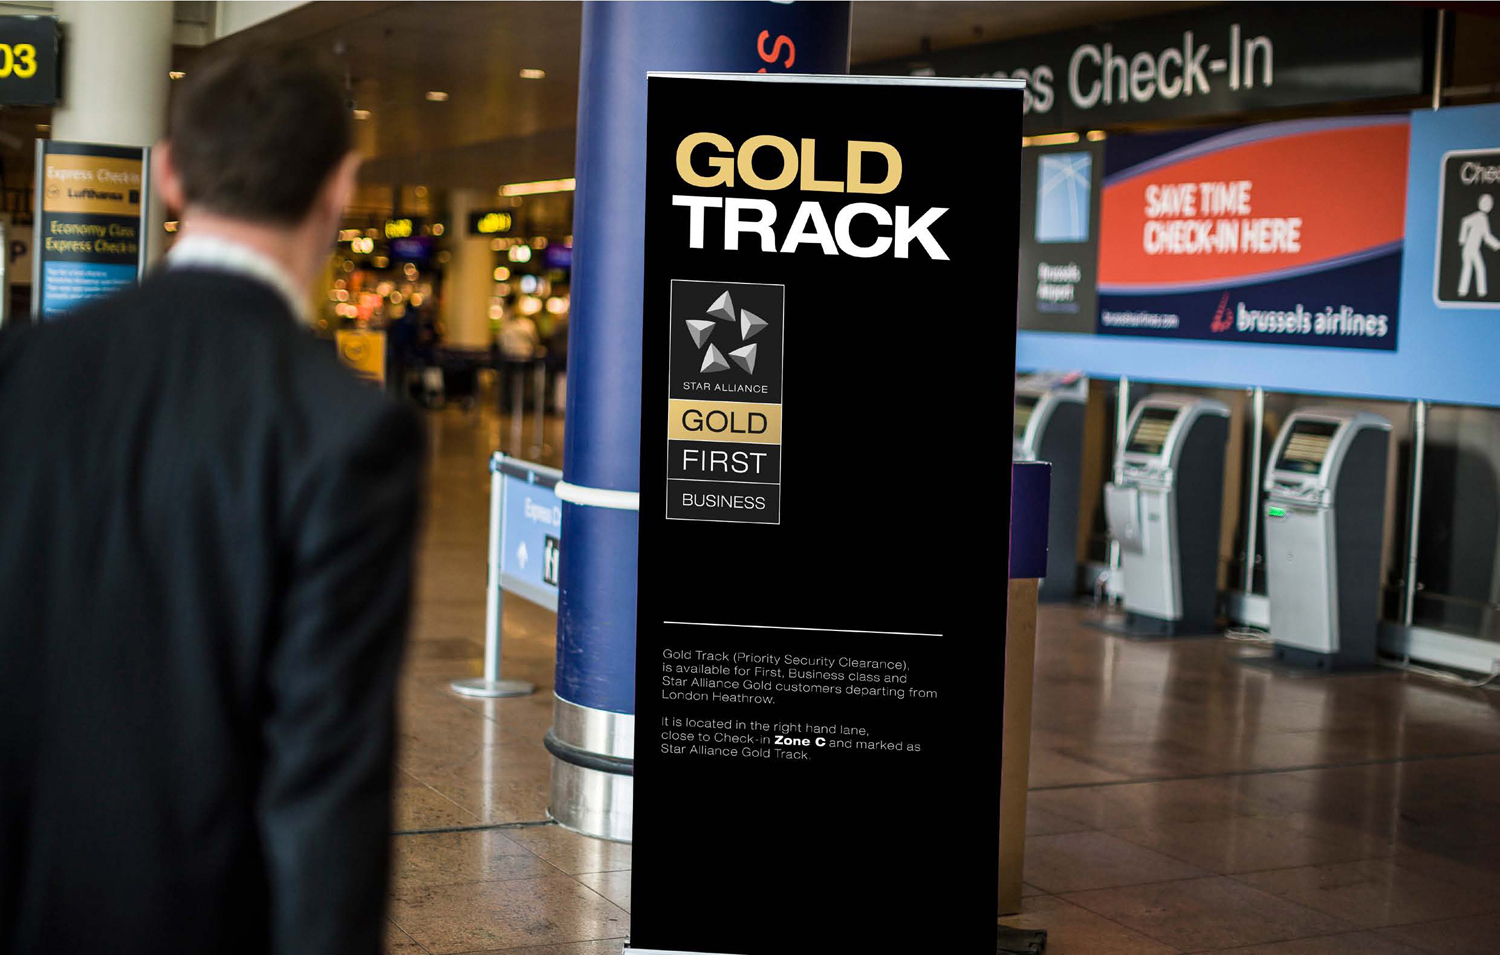 Star Alliance Fast Track.jpg